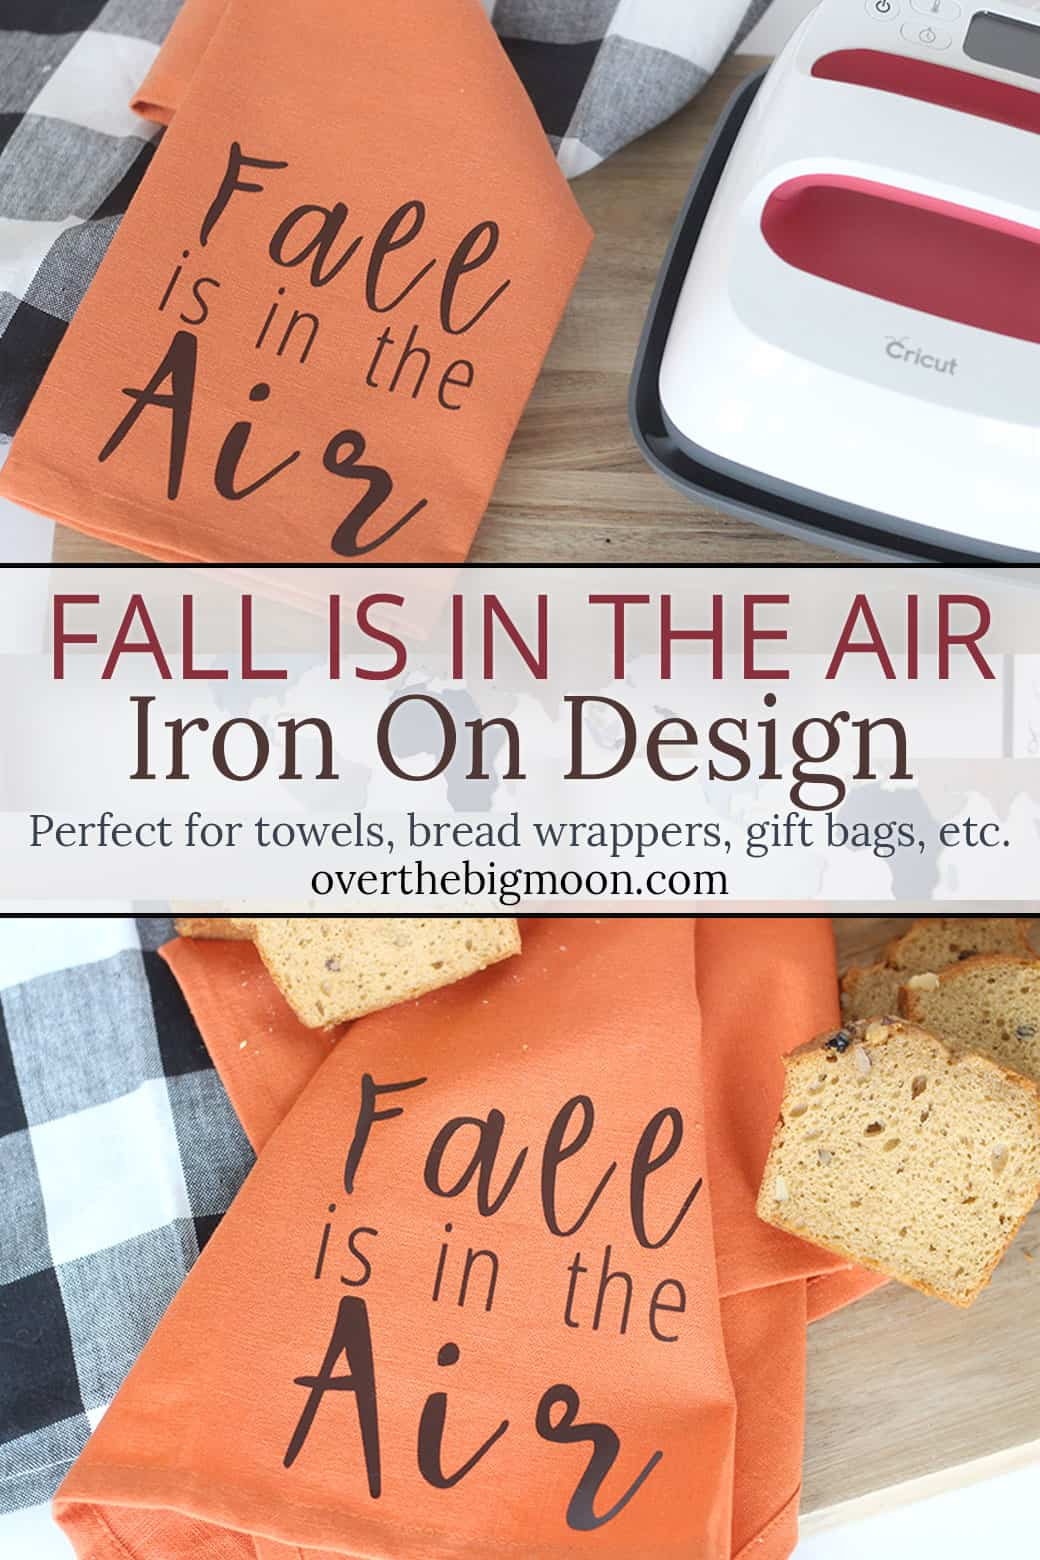 Fall is in the Air Iron On Design - perfect for a tea towel, bread wrapper, gift bag, etc! This file could be so cute to customize a Fall Themed Gift Idea! From overthebigmoon.com!